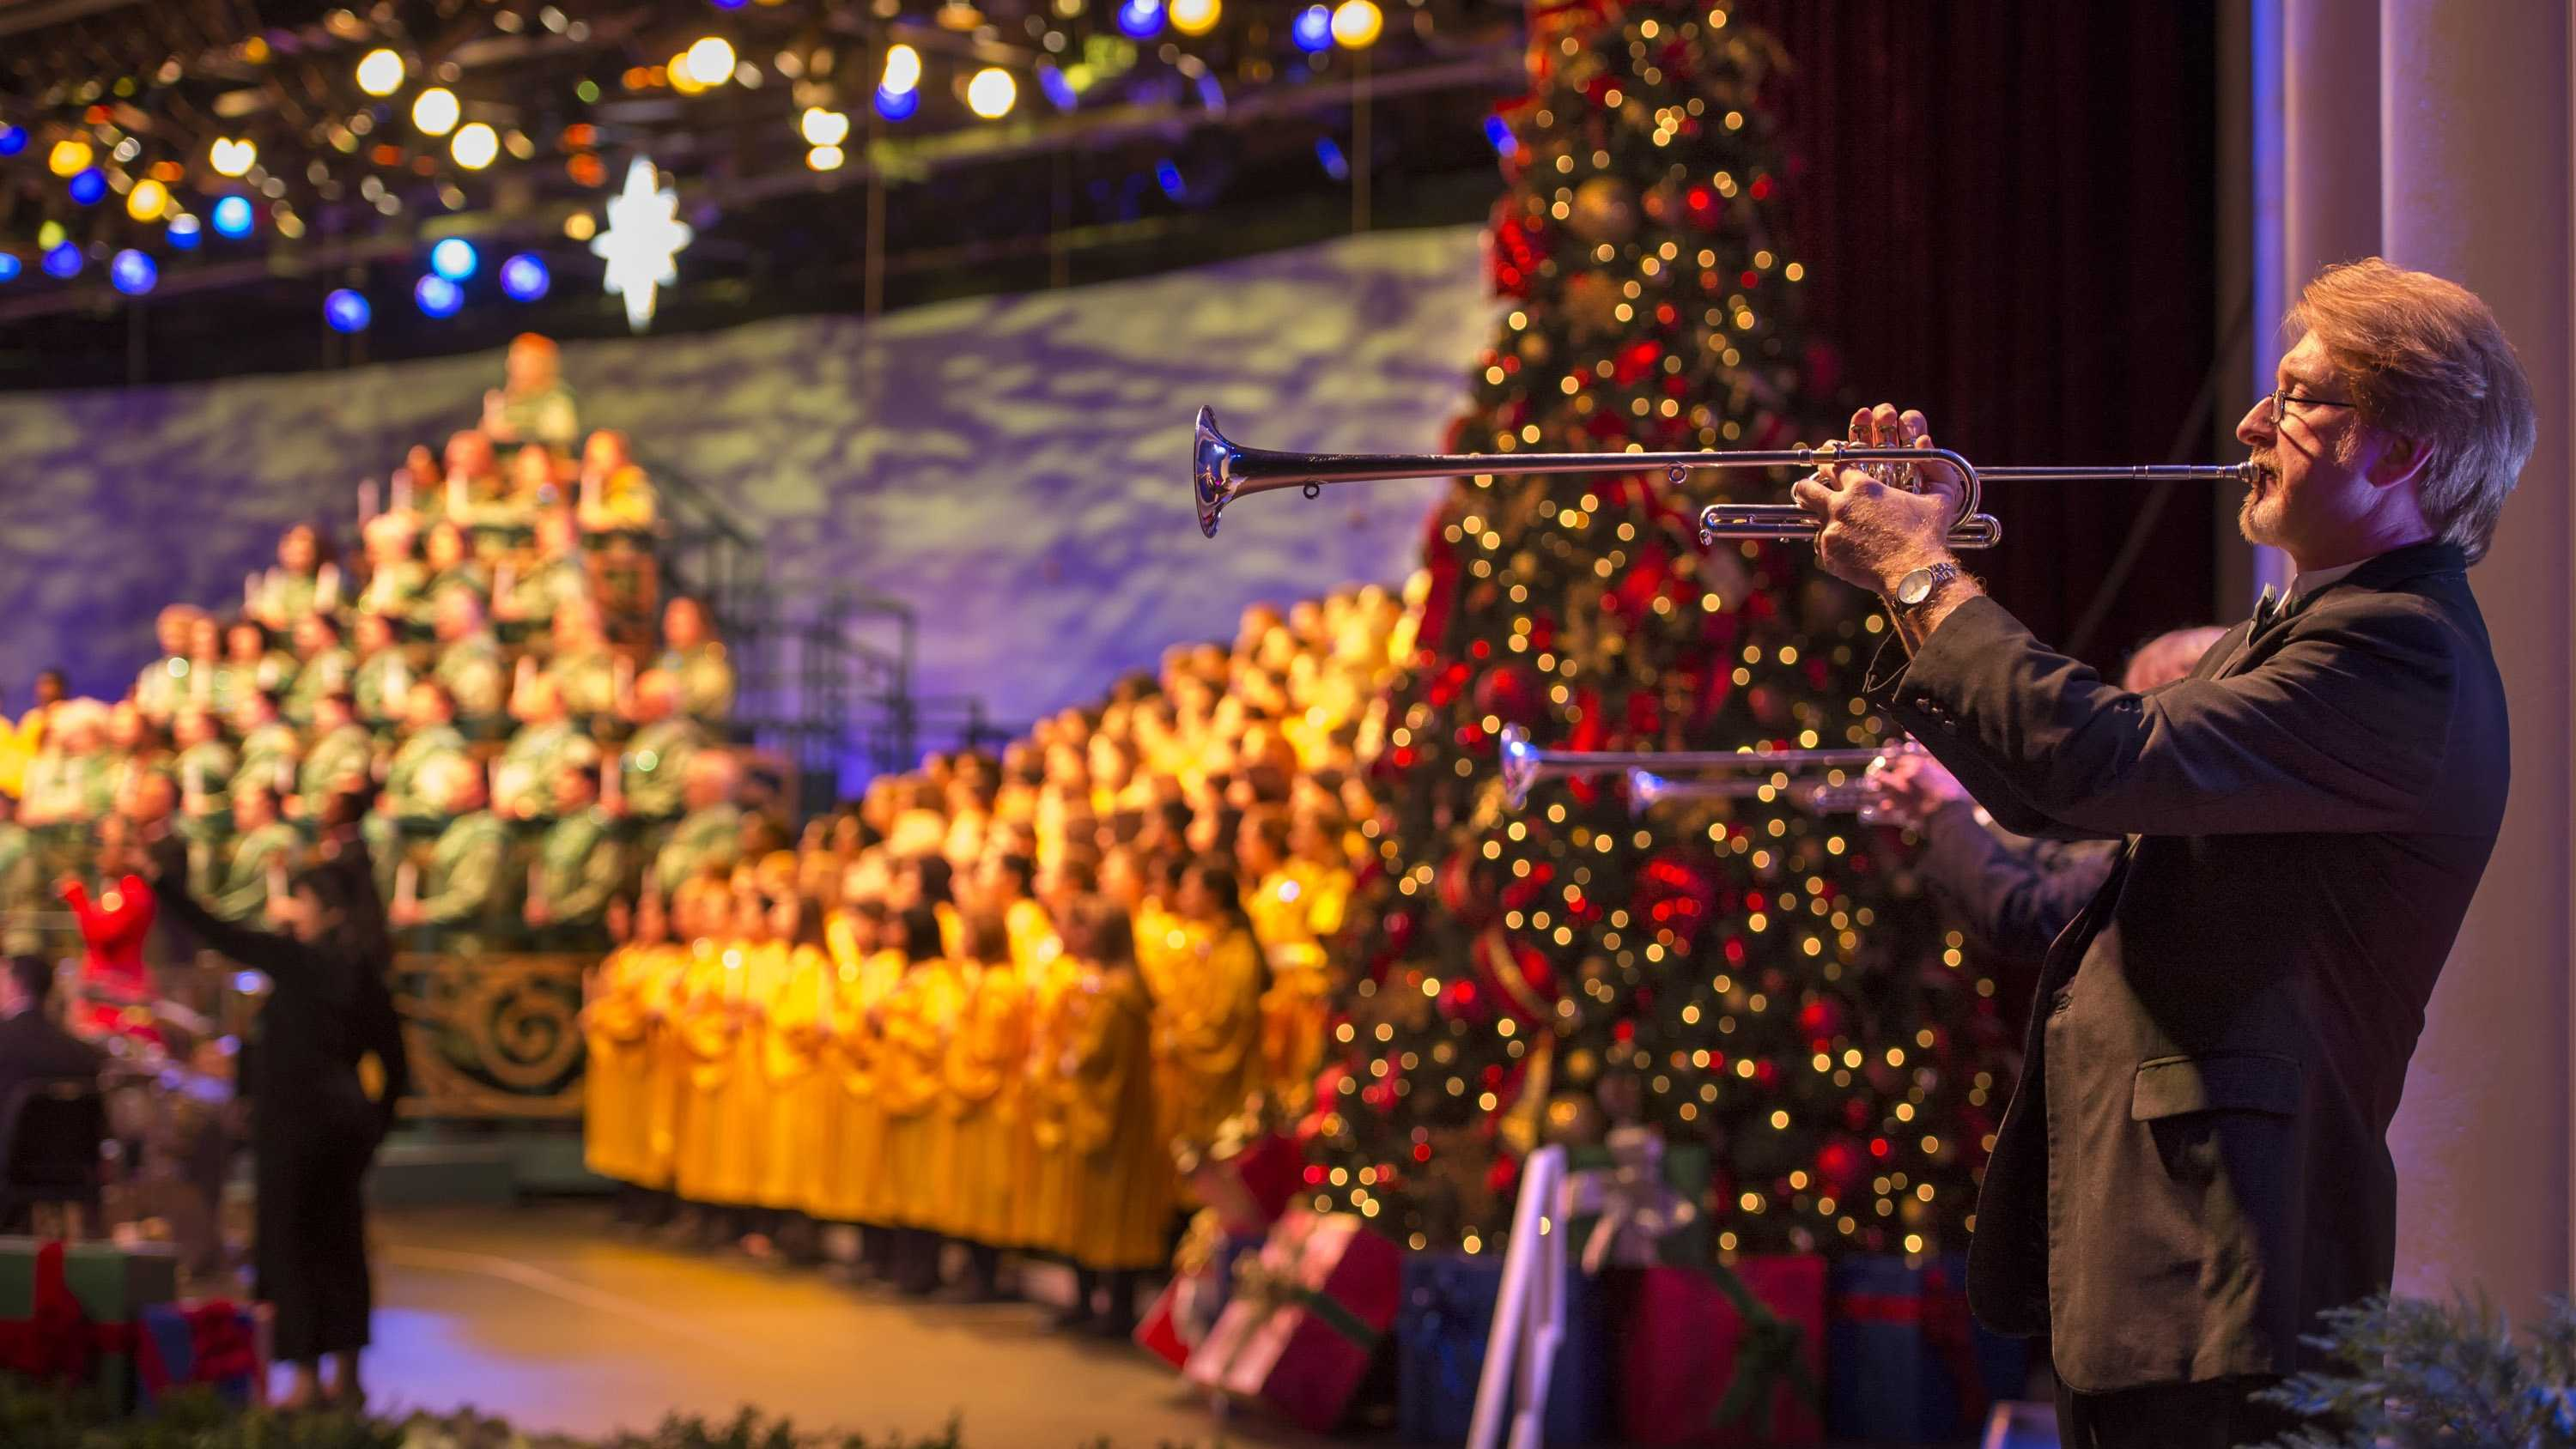 From Nov. 28 through Dec. 30, guests can attend Disney's Candlelight Processional, which will feature a 50-piece orchestra, a mass choir and the retelling of the Christmas story by an impressive lineup of celebrity narrators.